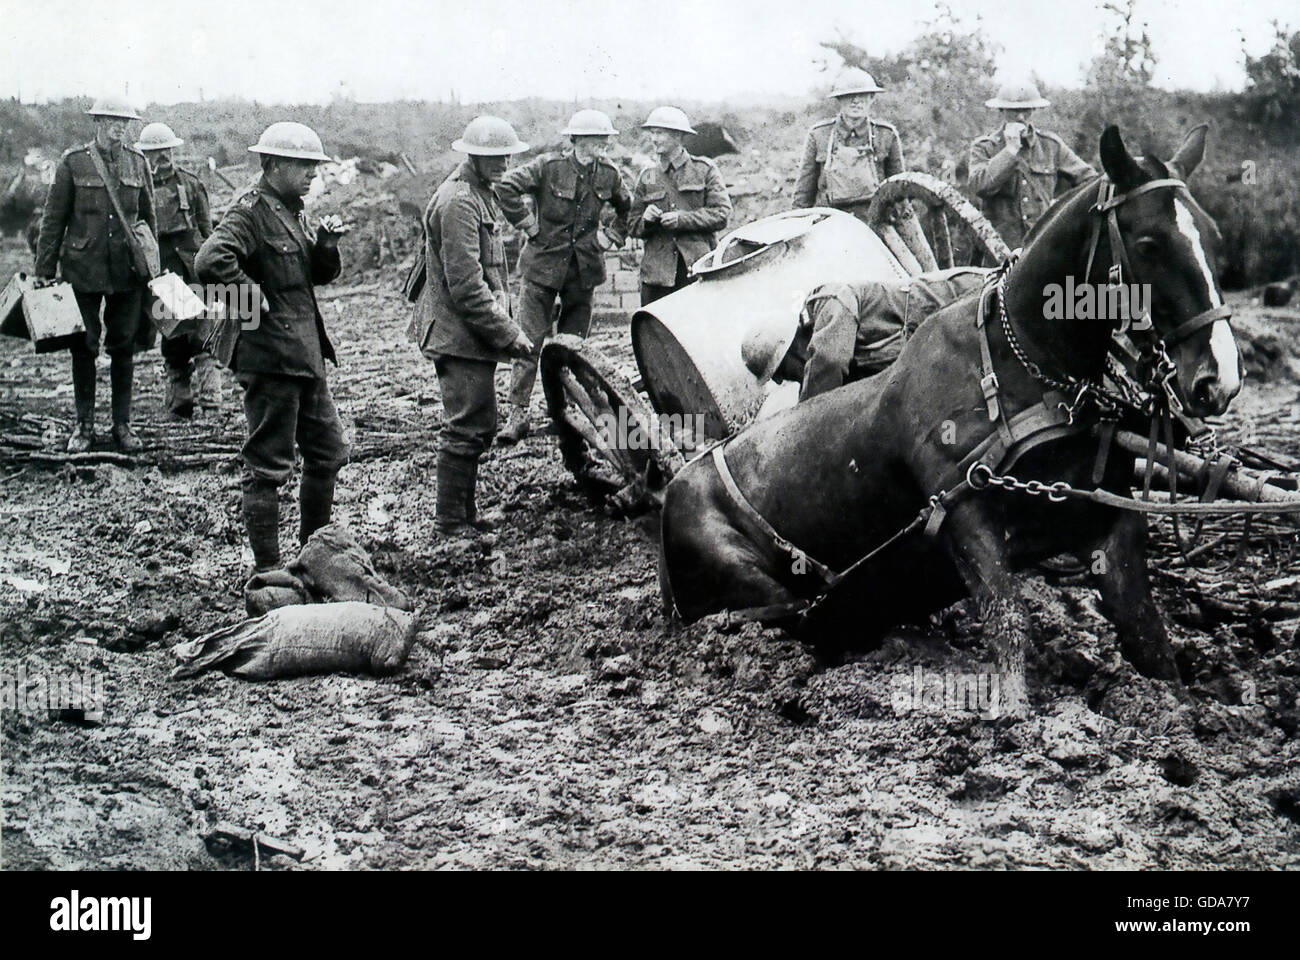 FIRST WORLD WAR  British soldiers deciding how to rescue a horse-drawn water wagon stuck in mud at St. Eloi de Fourques, - Stock Image